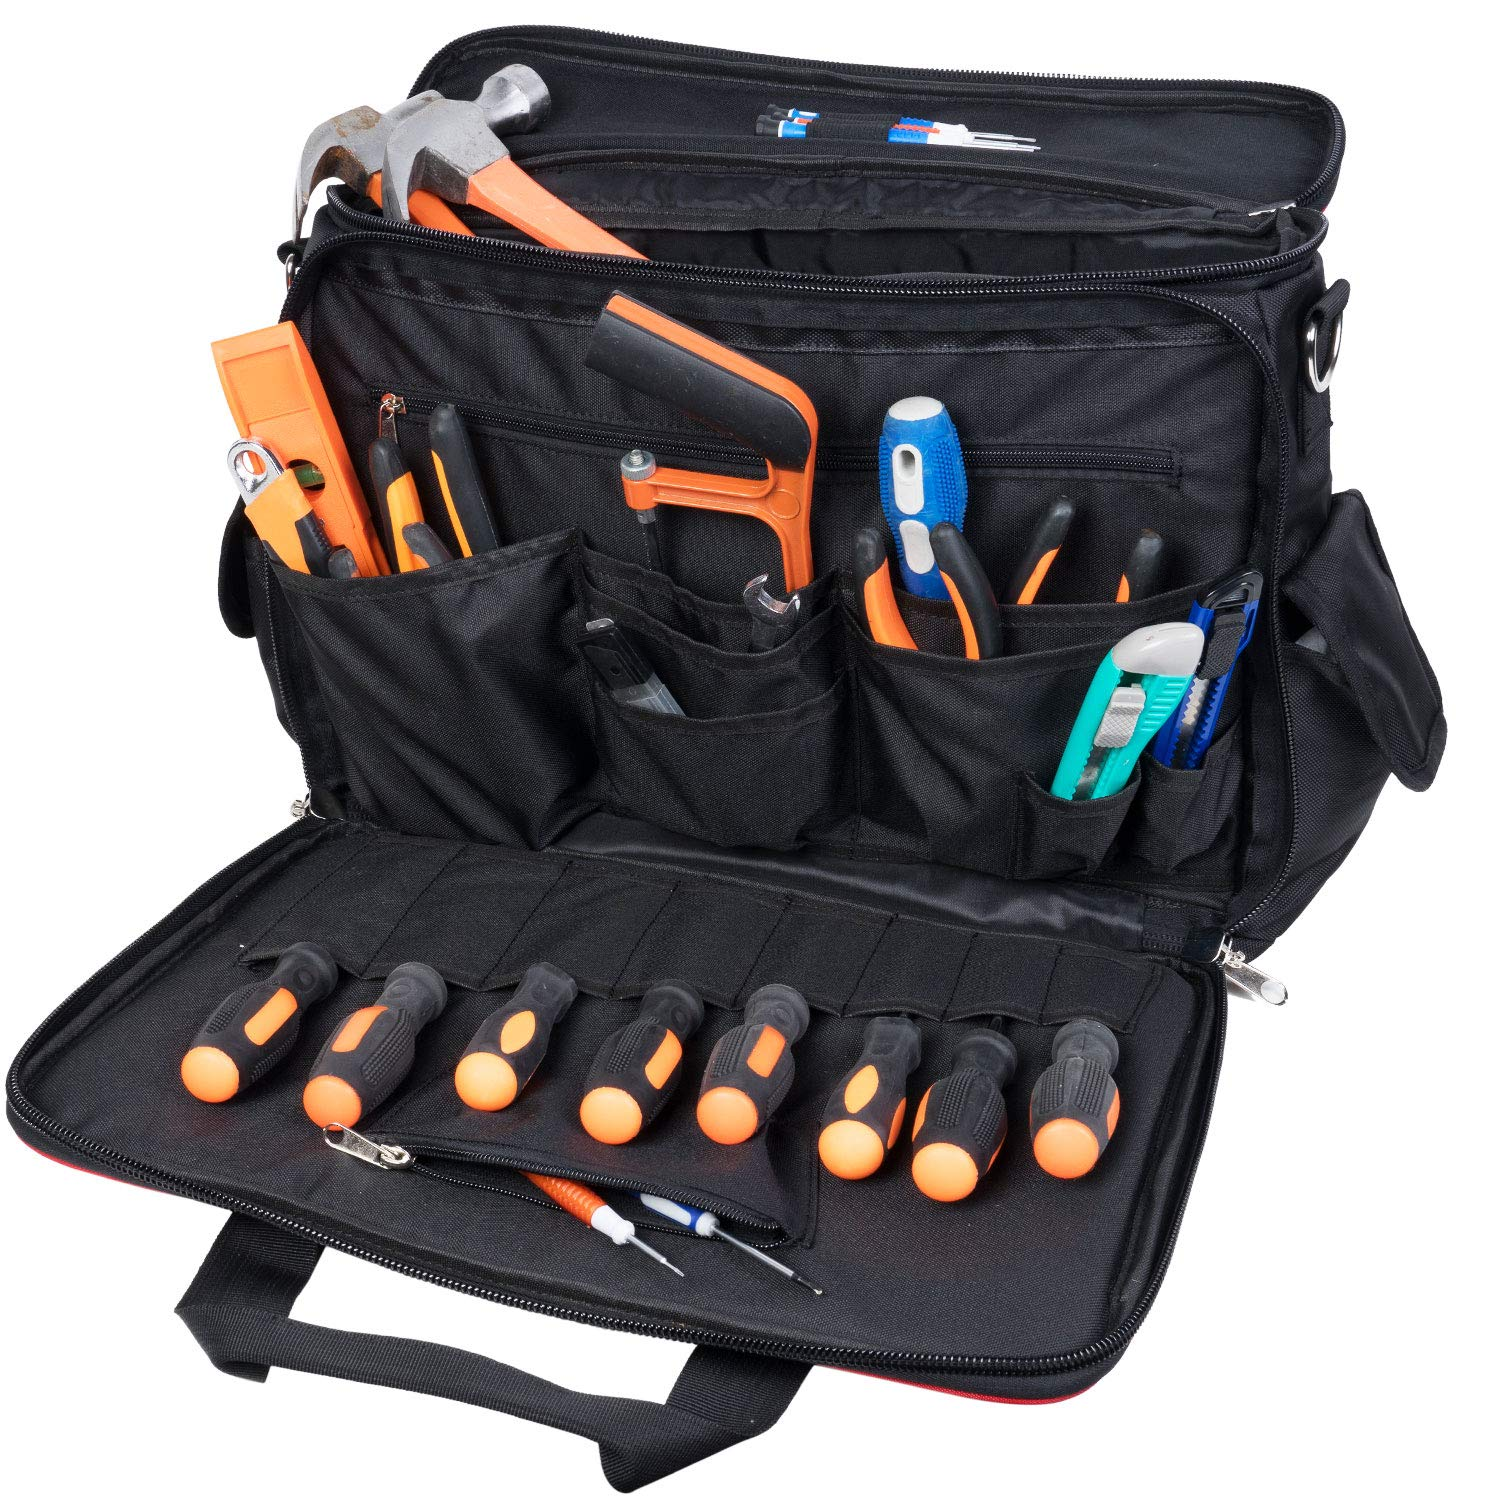 Lifewit Tool Storage Bag - 18 Inch Wide Mouth Shoulder Electrician Tool Pouch Water Proof,Tradesman Pro Organizer Pockets